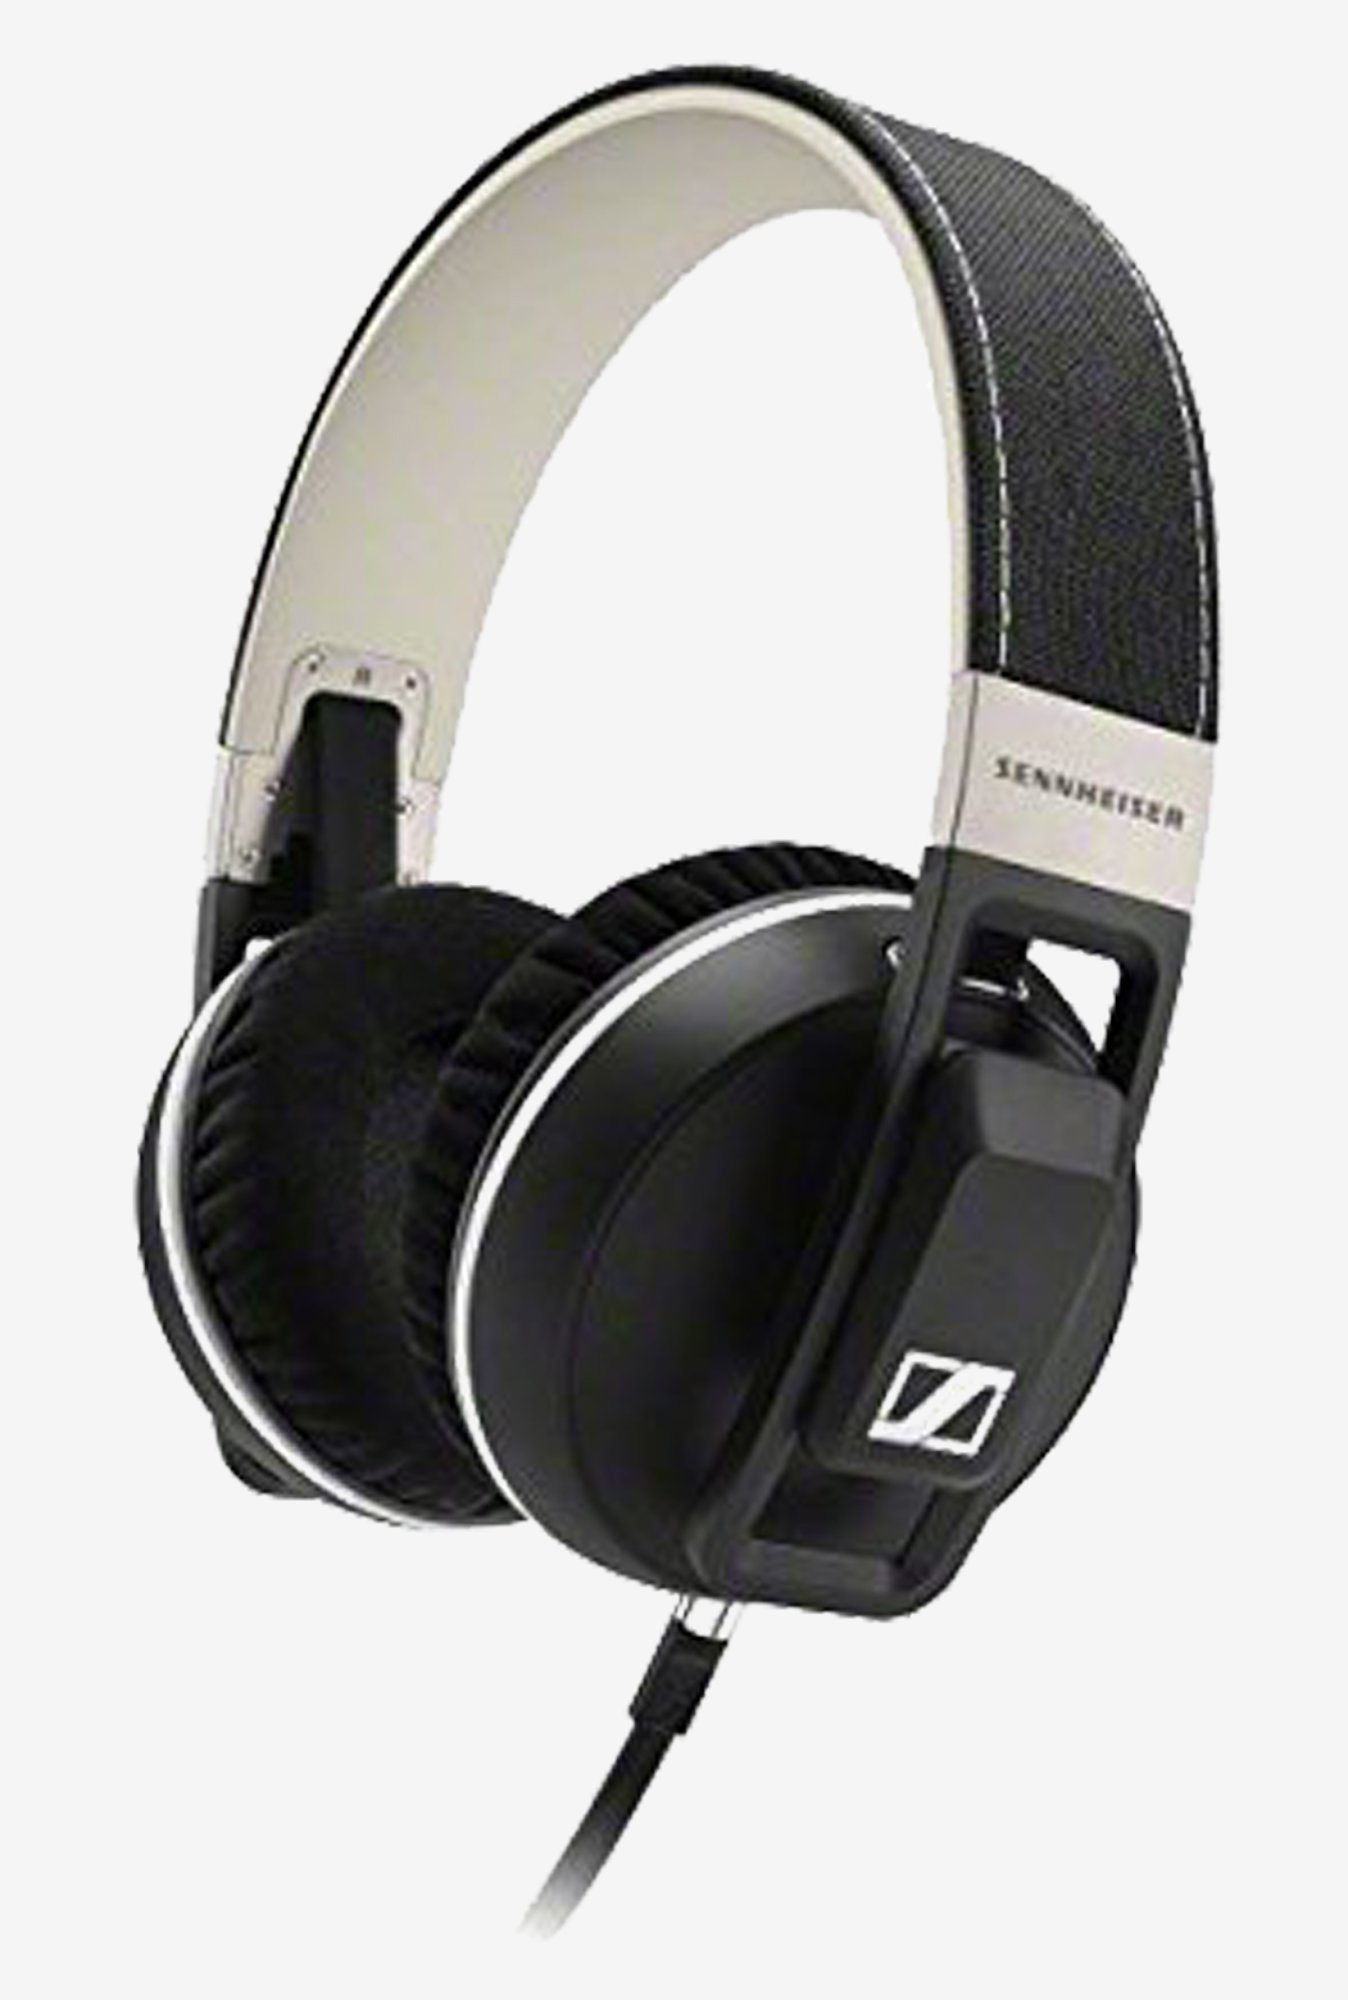 KolorEdge 4353-HEADPHONE32 Stereo Headphone(Black)